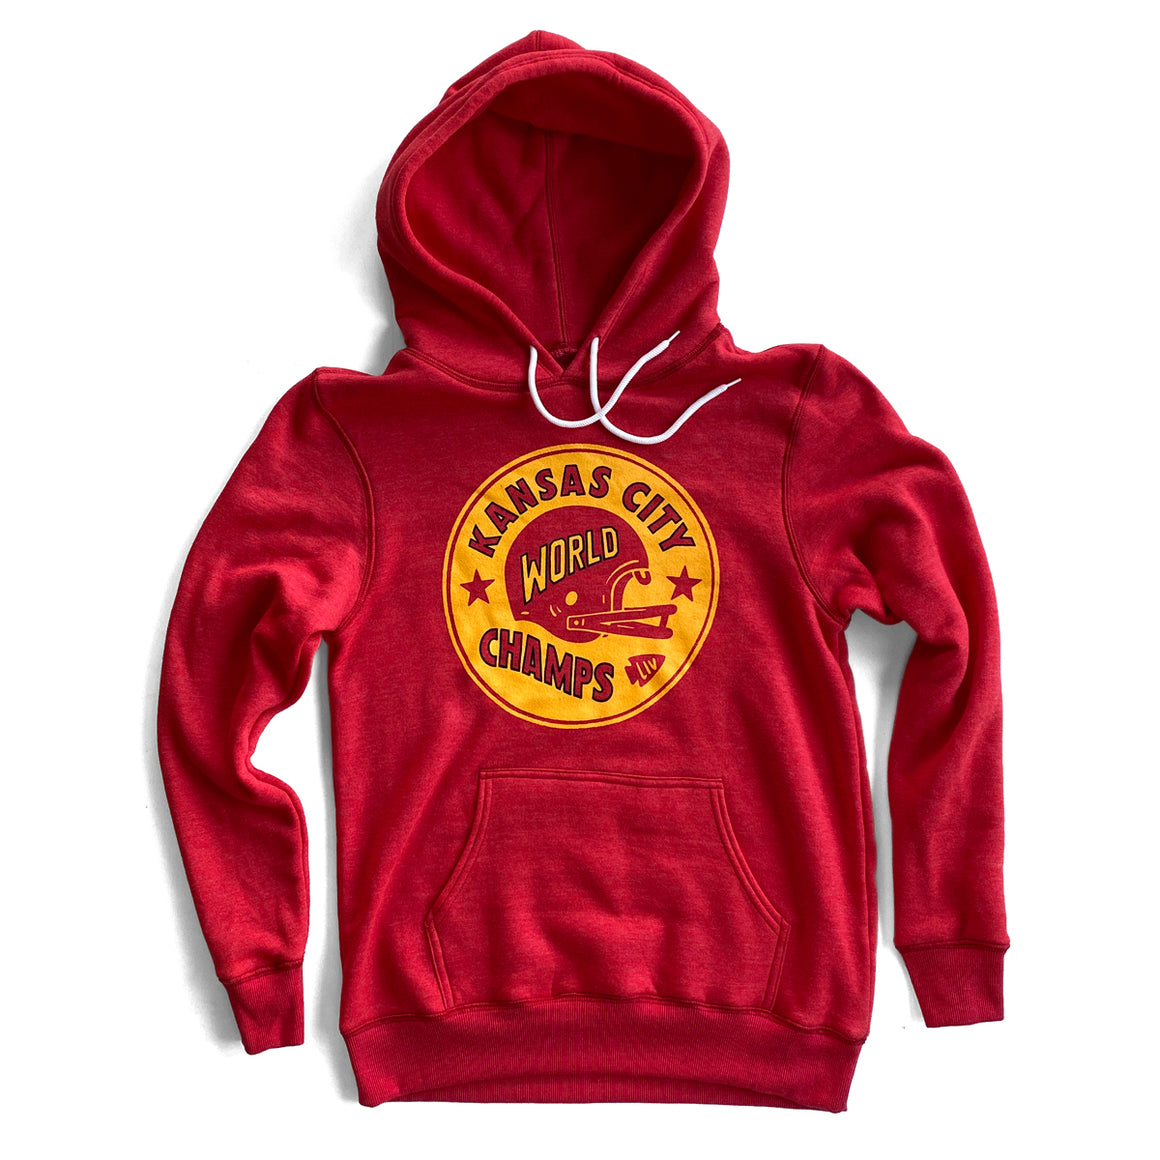 CHARLIE HUSTLE | KANSAS CITY WORLD CHAMPS HOODIE - RED